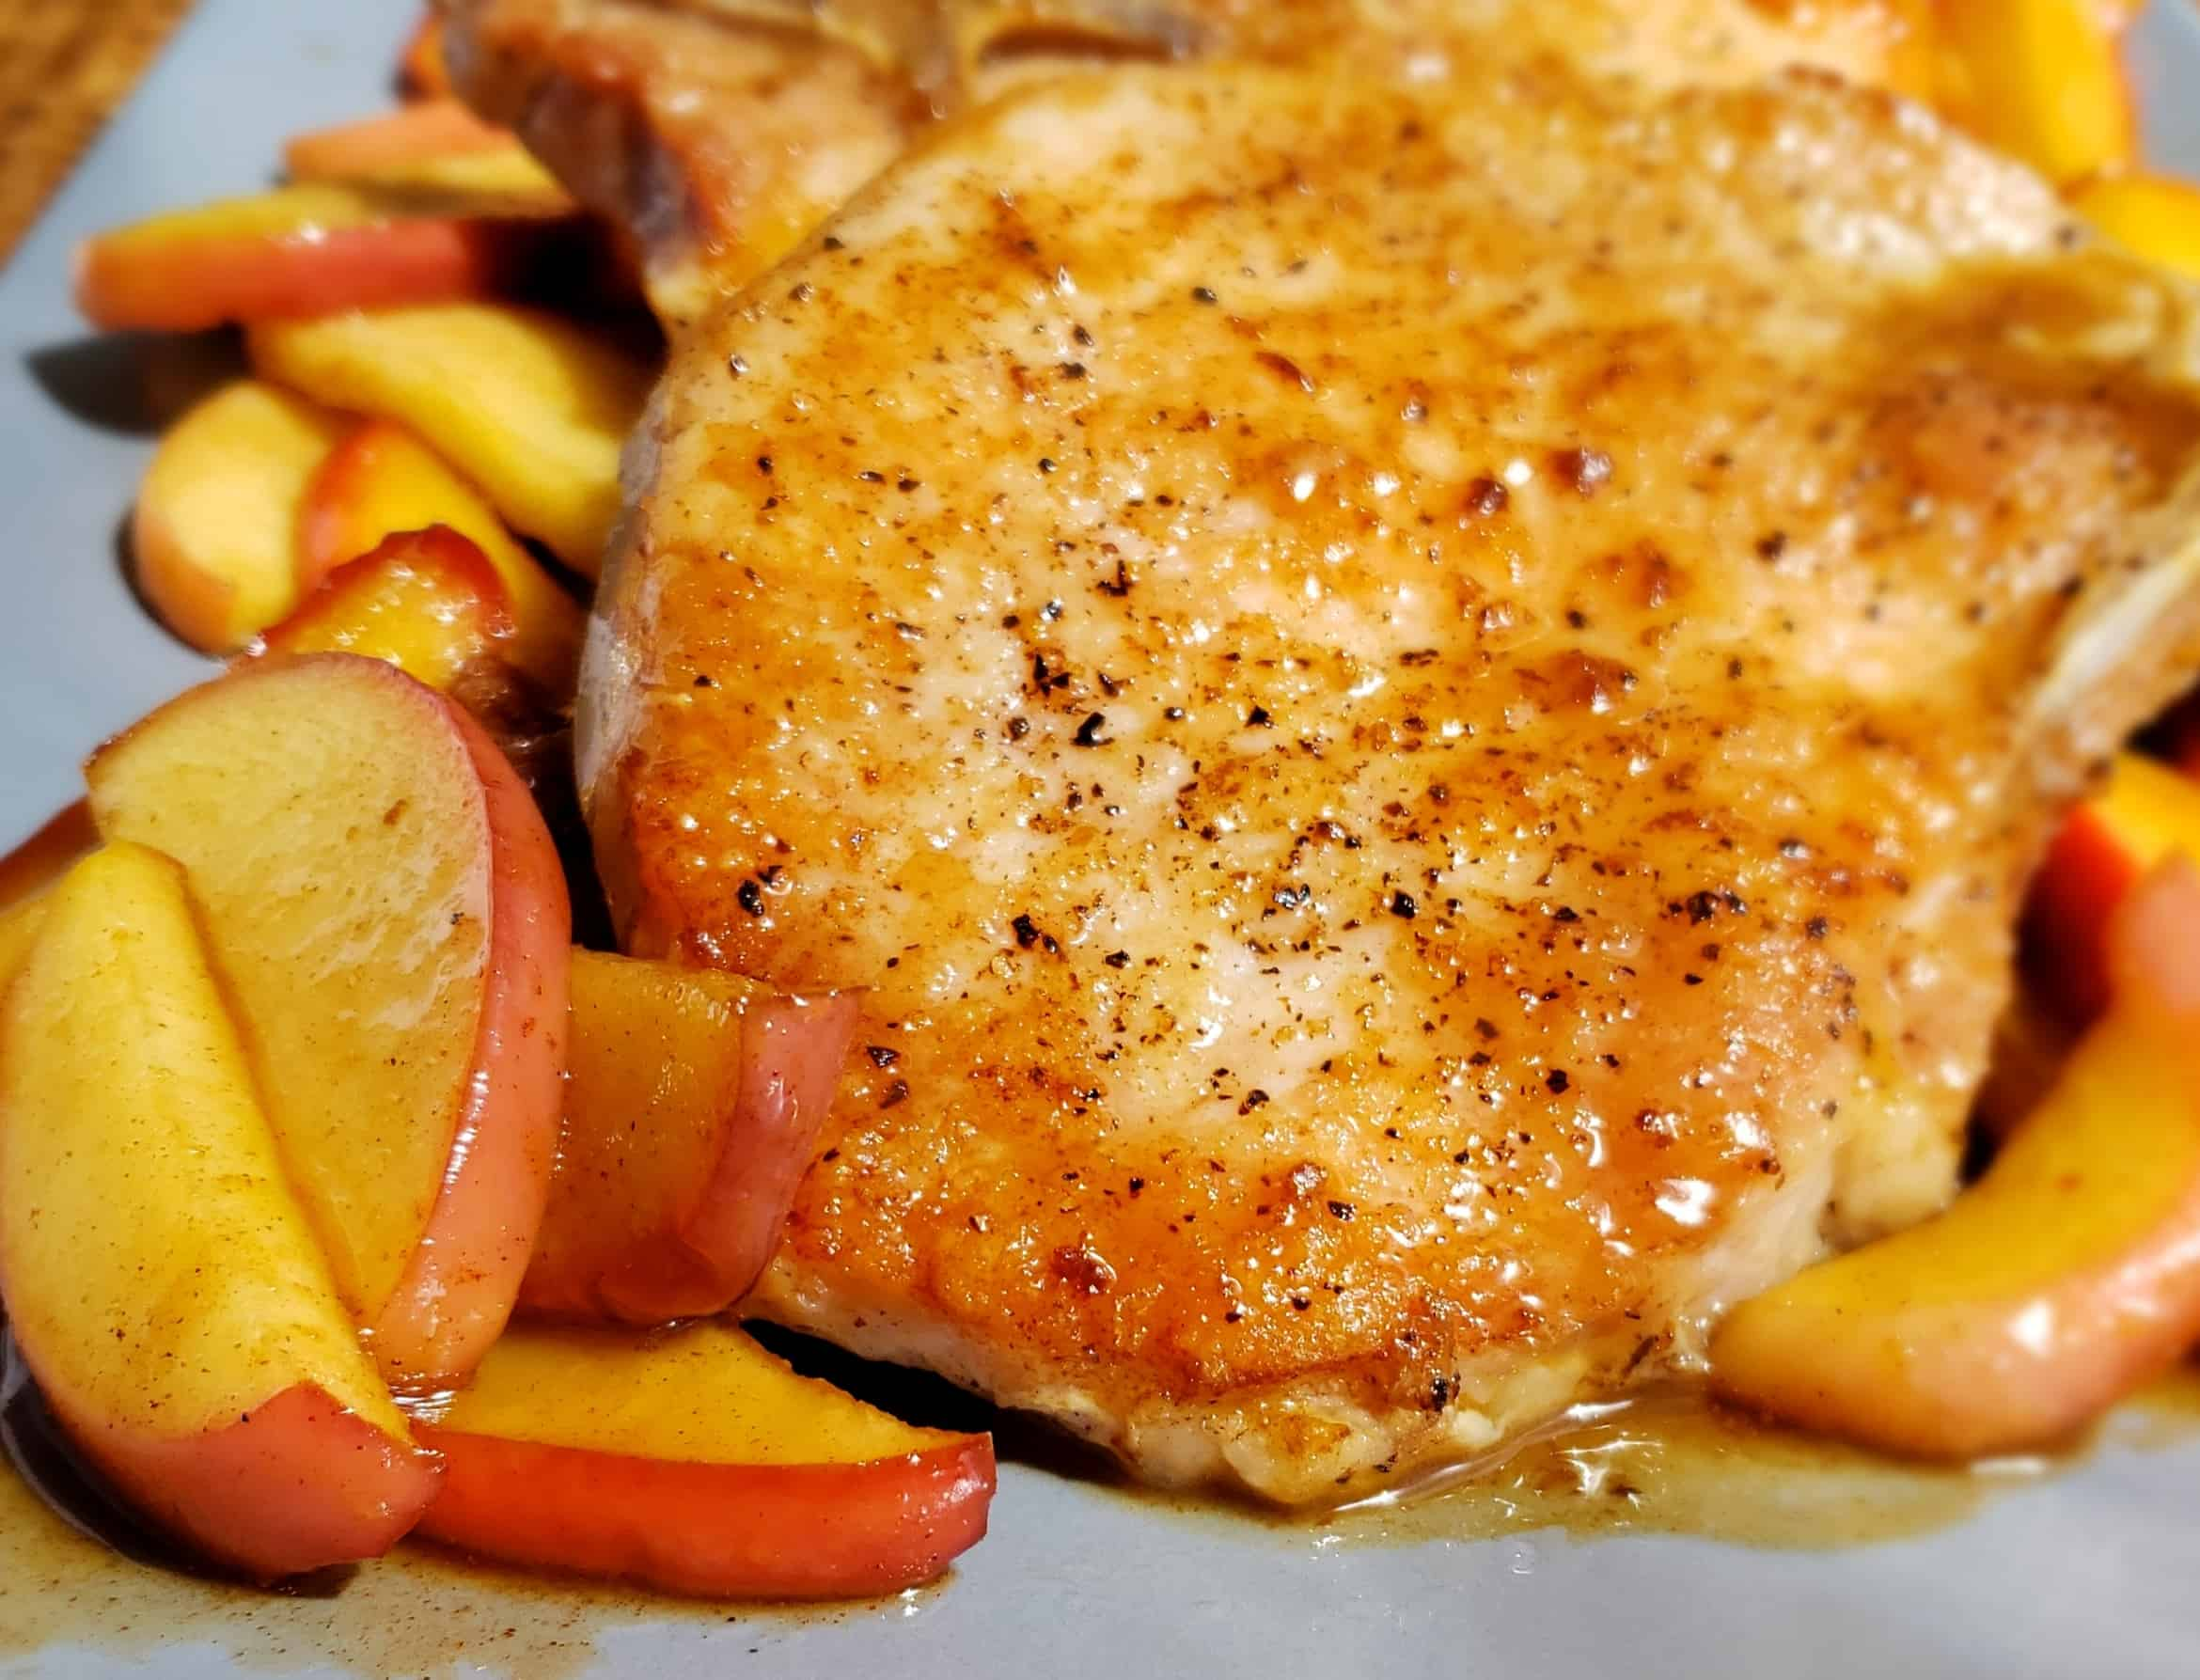 Pan Seared Pork Chops close up front view